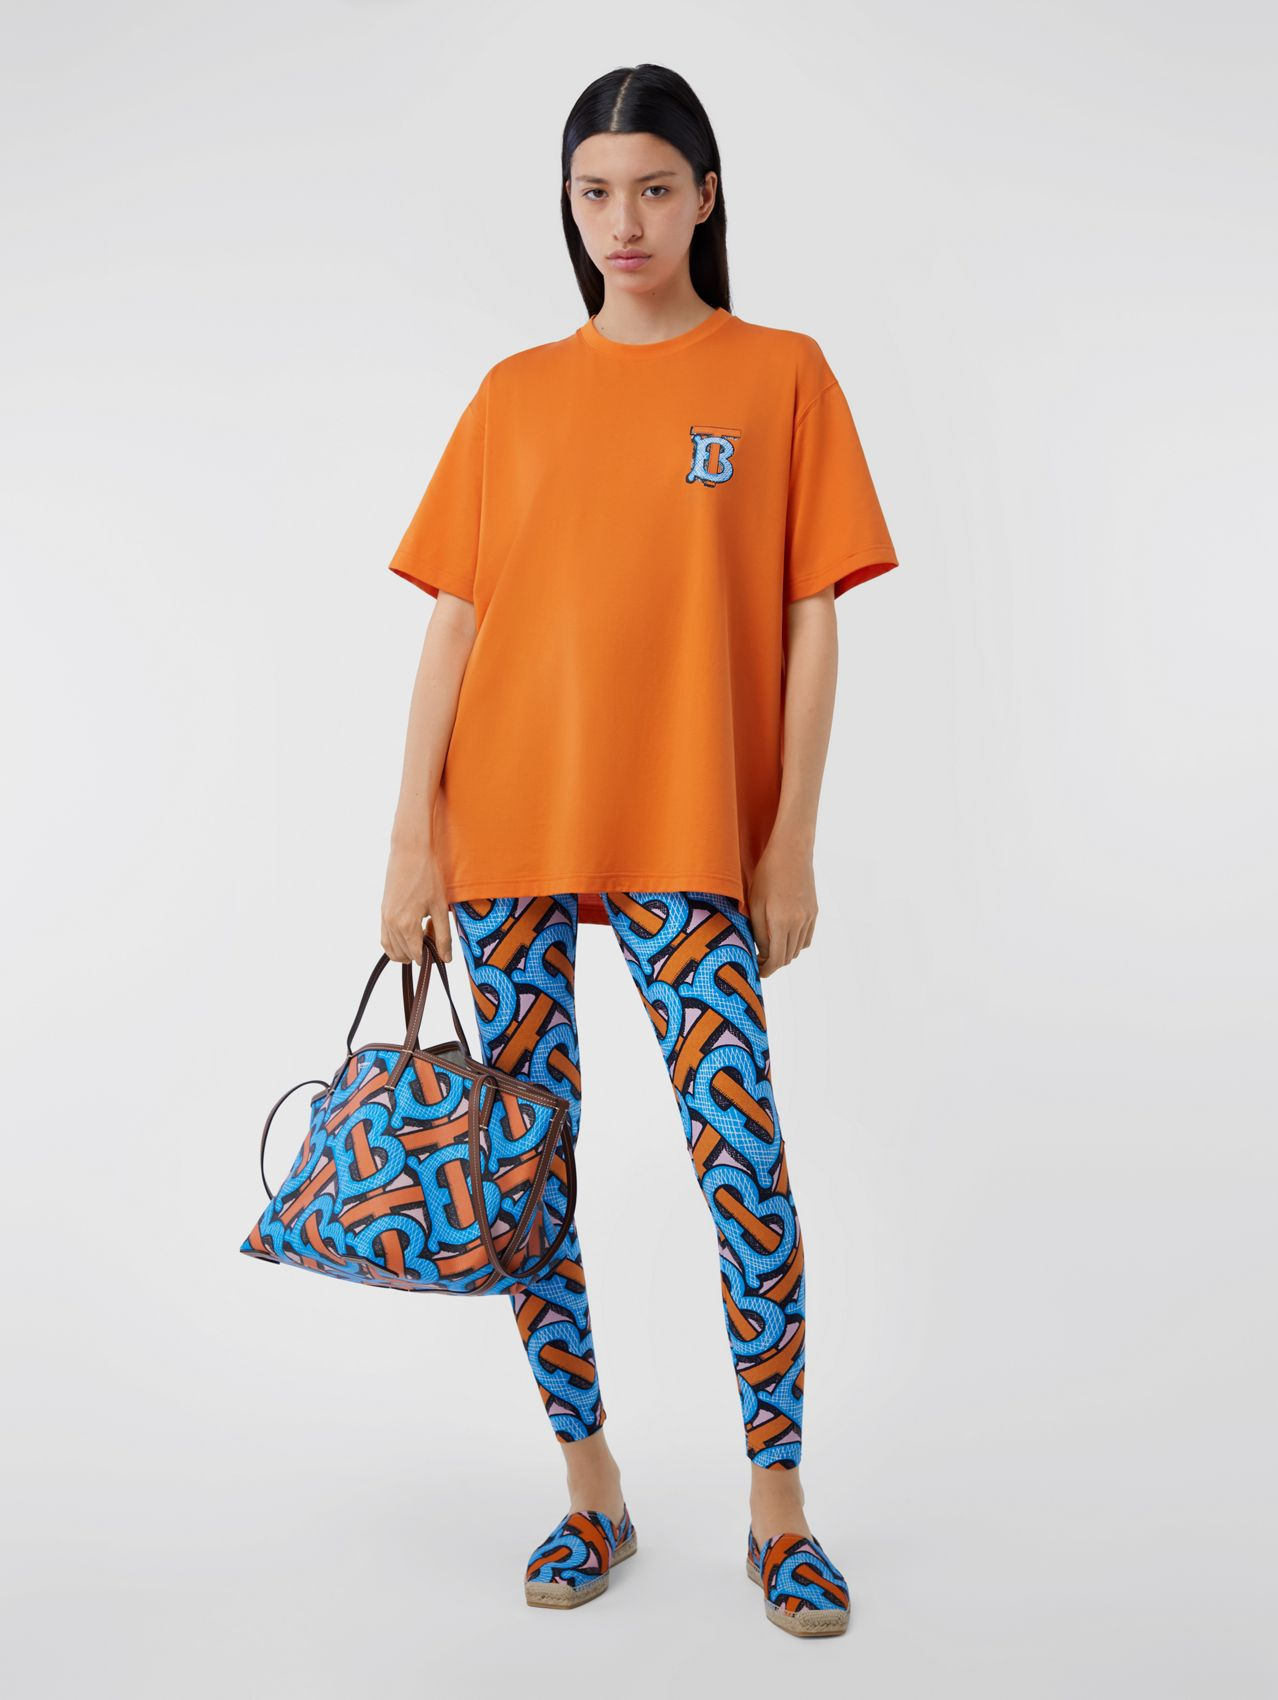 Monogram Motif Cotton T-shirt – Unisex (Bright Orange)